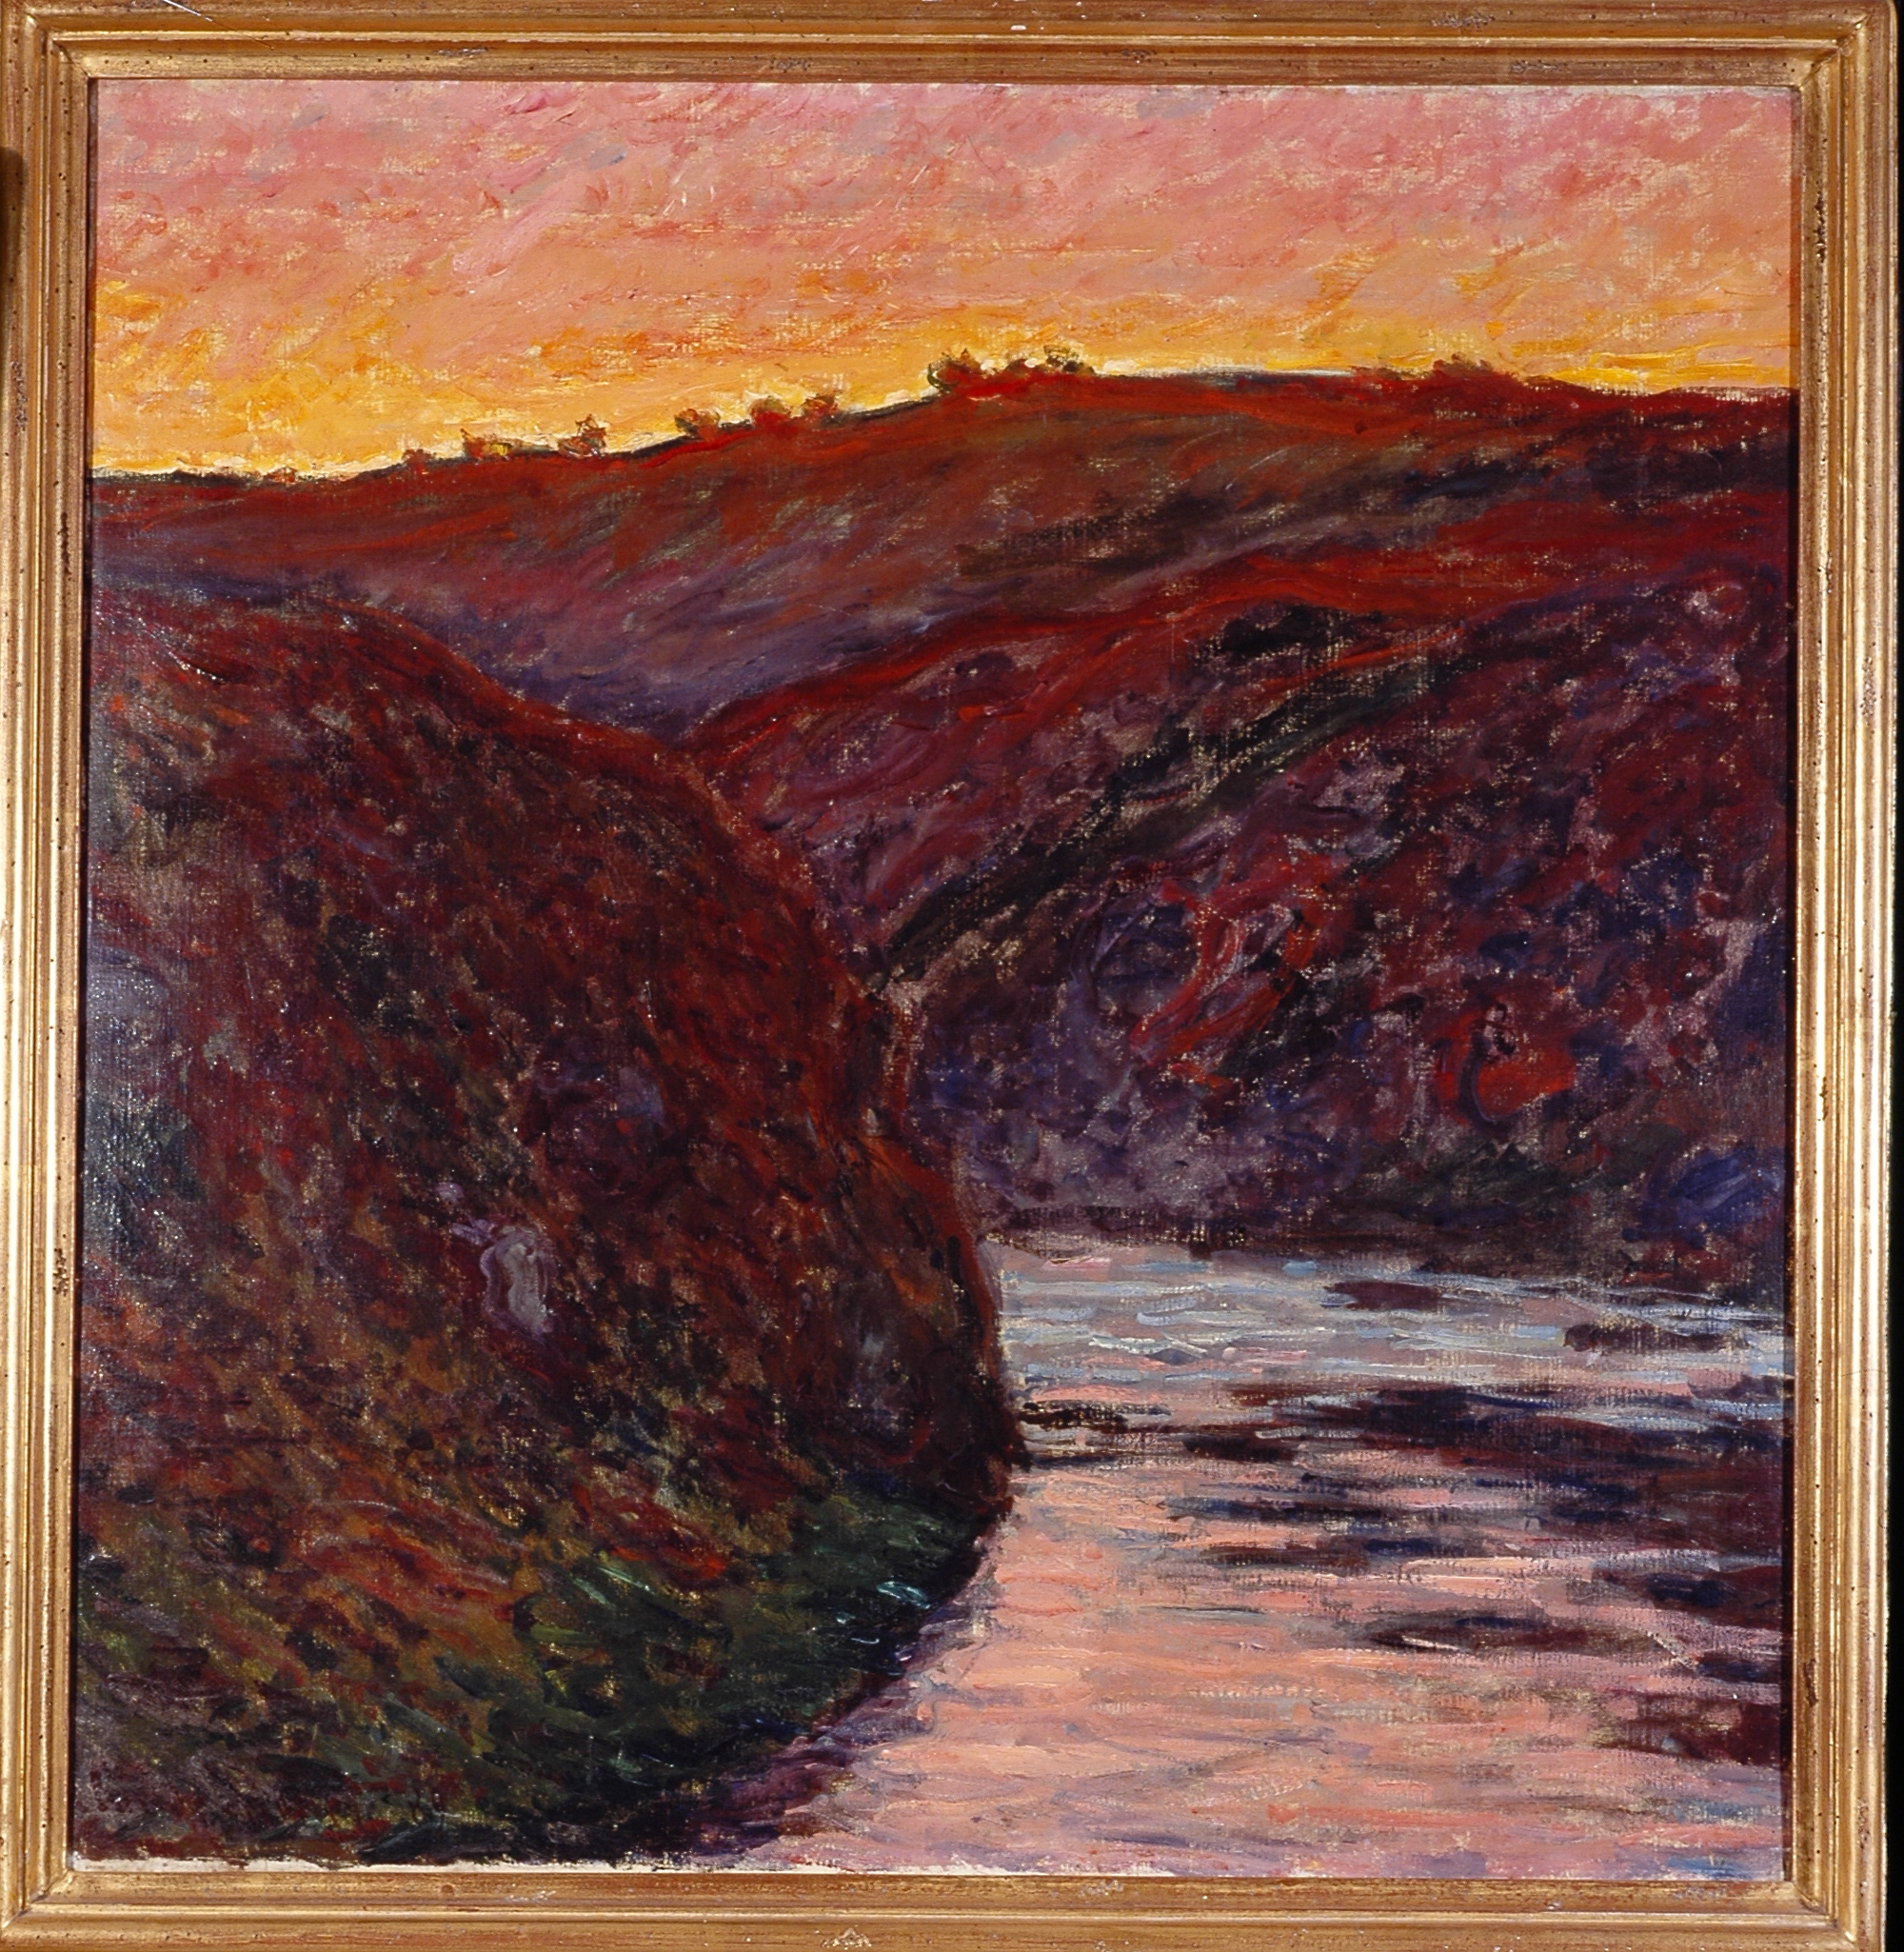 Claude Monet, La Vallée de la Creuse, 1889